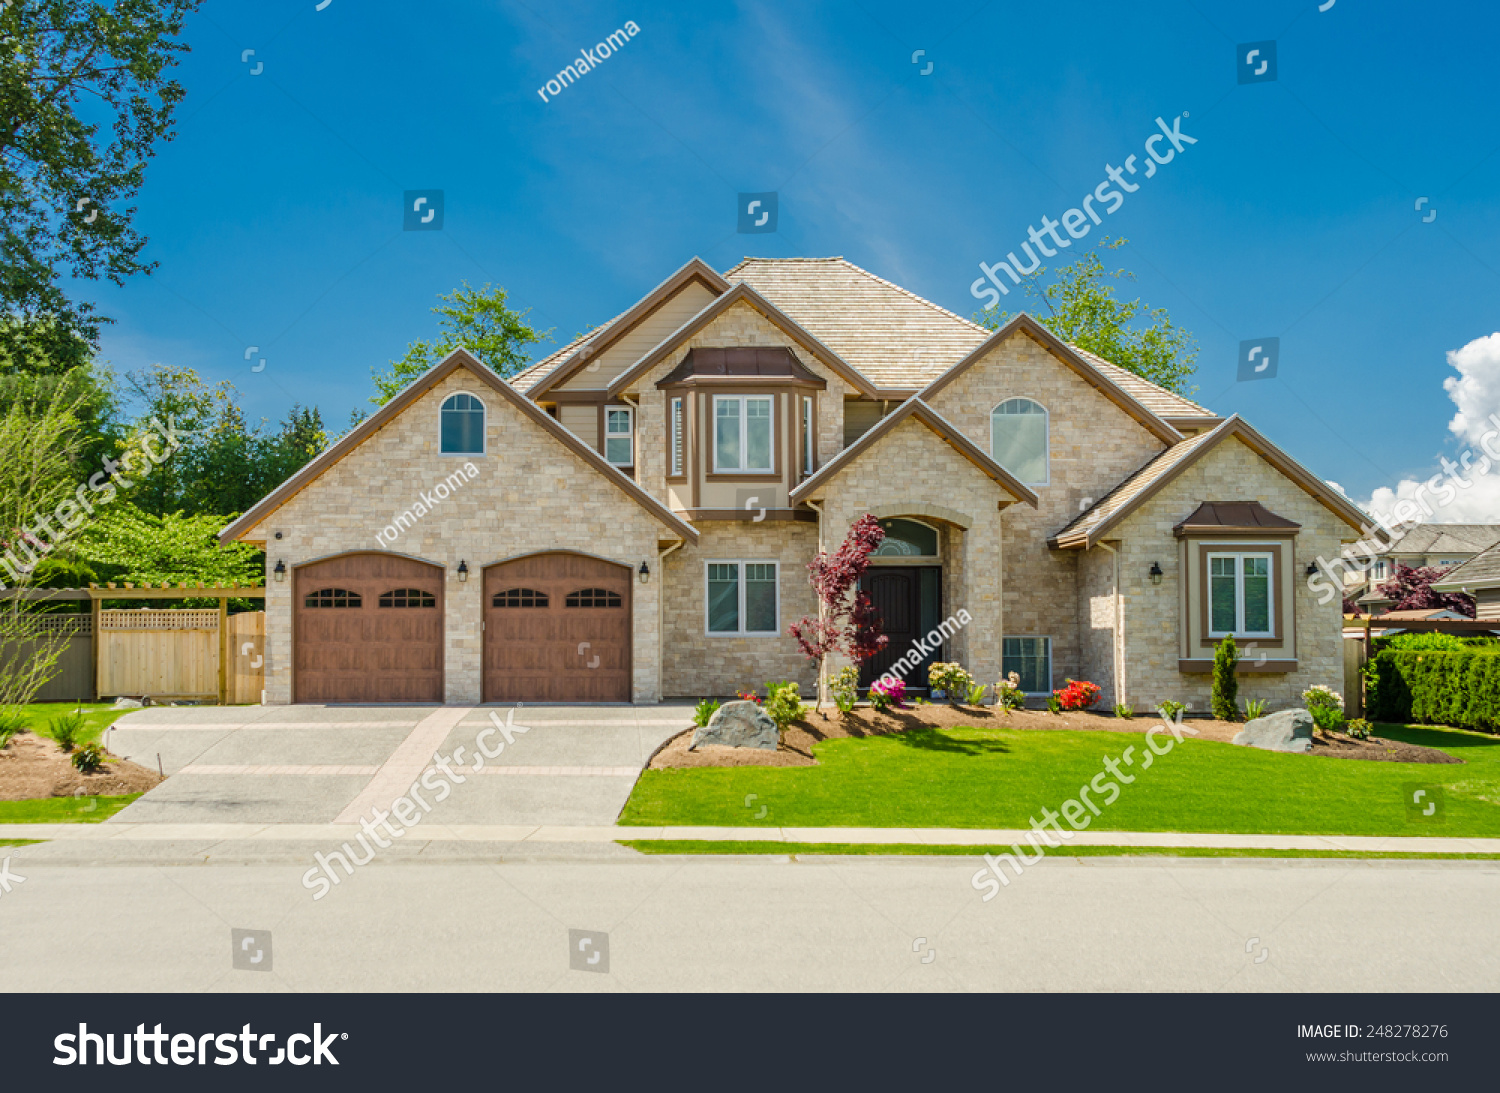 Big luxury custom made house with nicely landscaped front for Garage in front of house